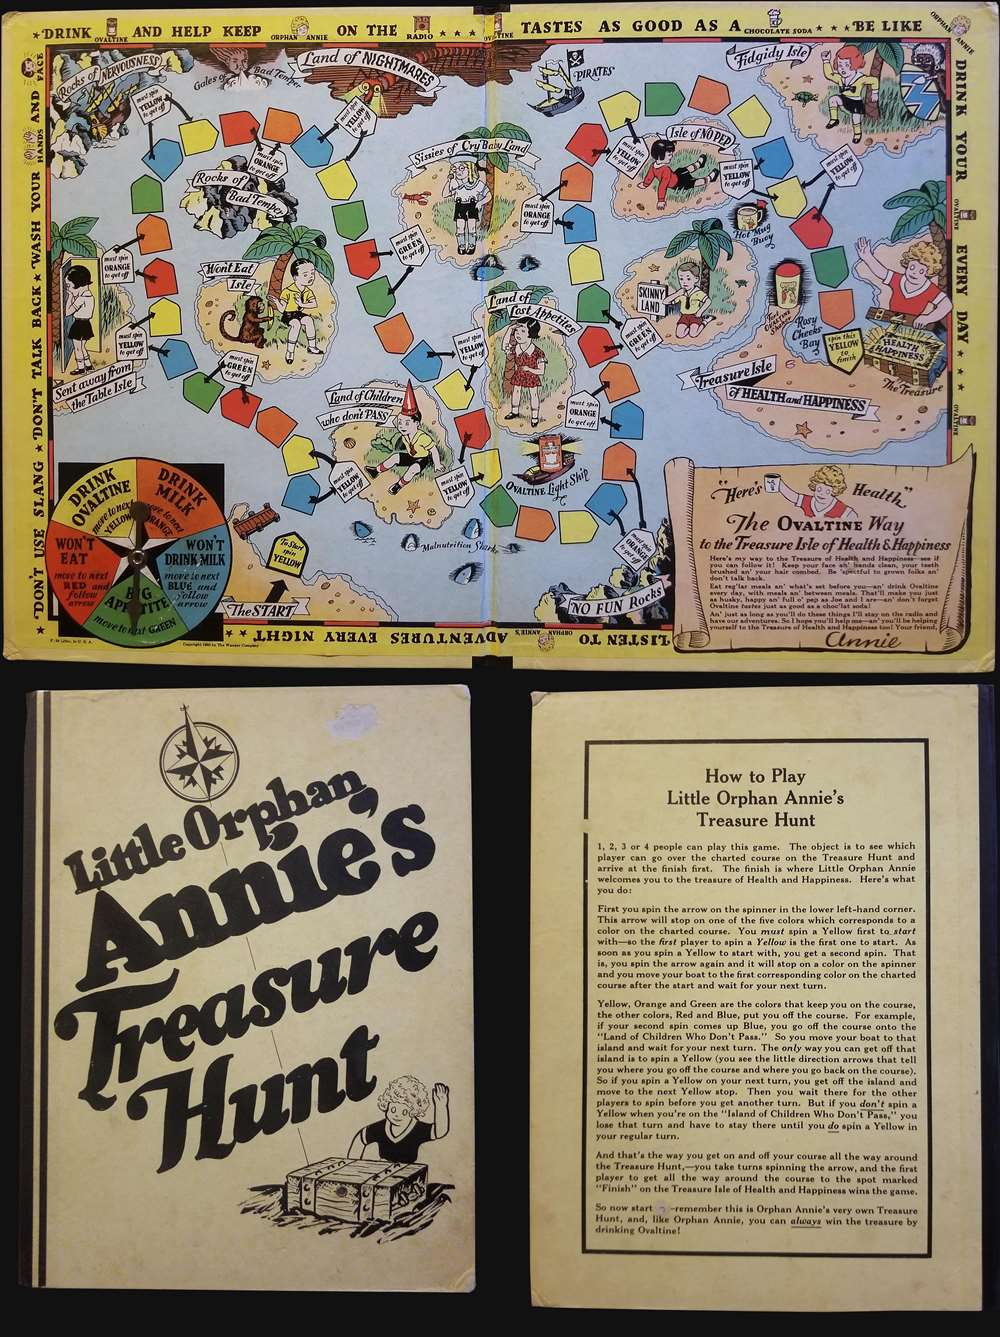 Little Orphan Annie's Treasure Hunt.